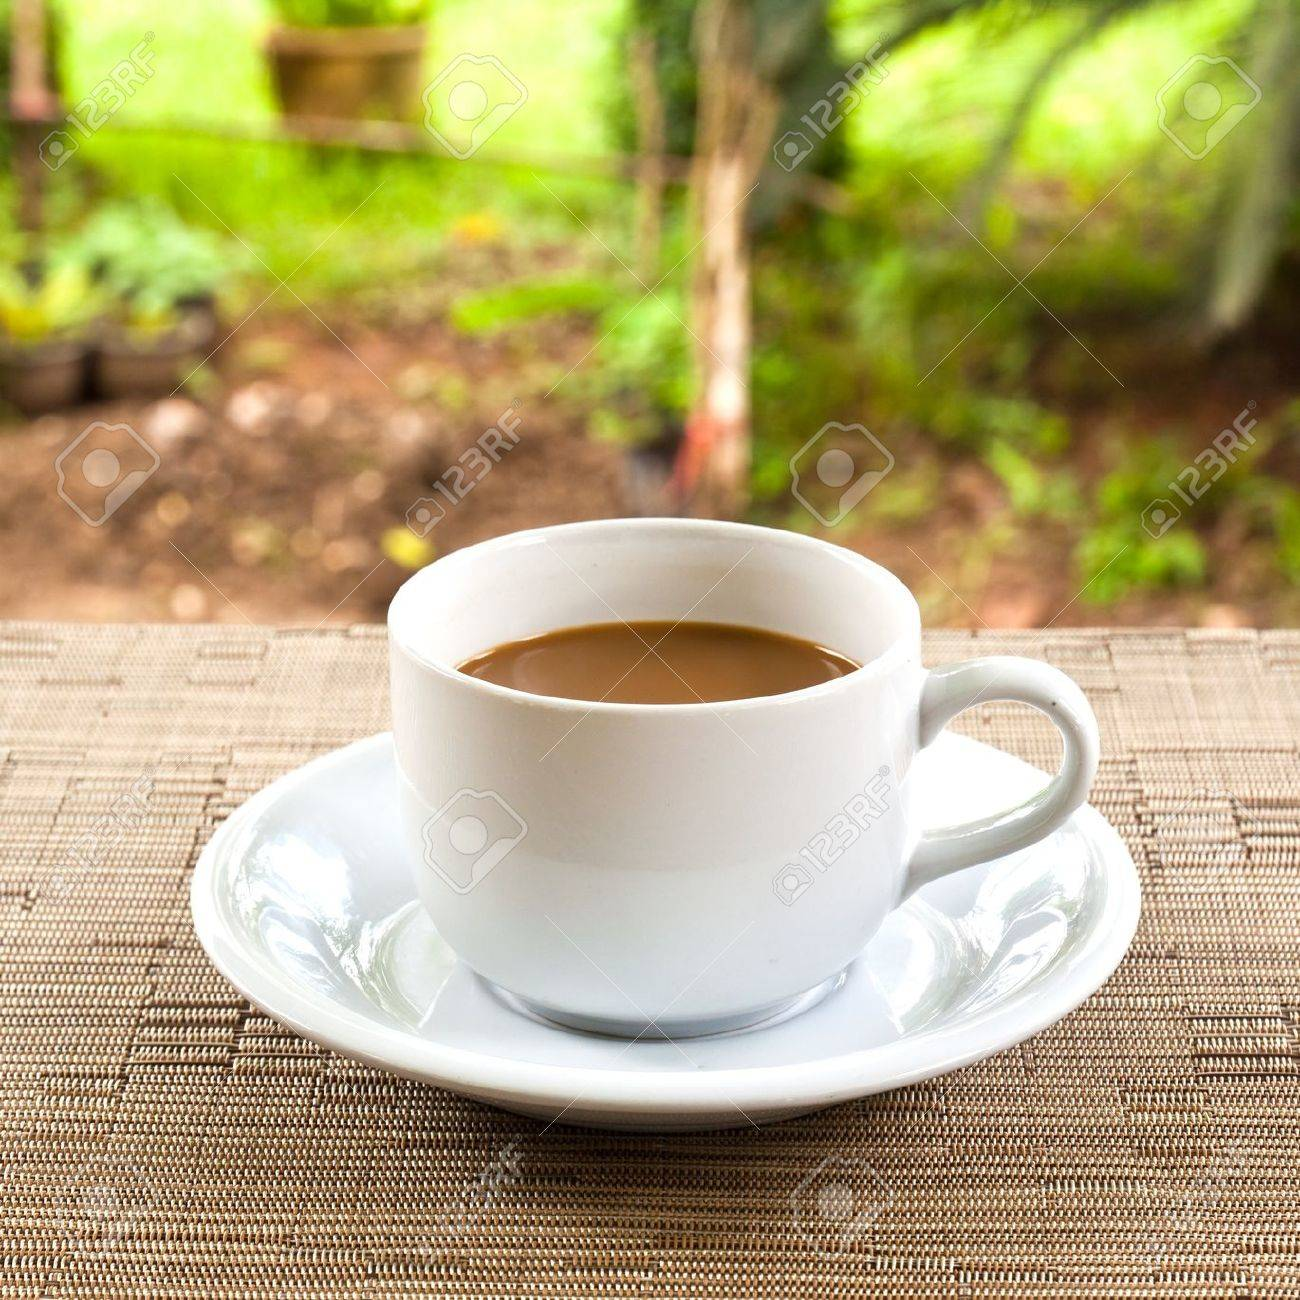 cup of coffee on the table stock photo, picture and royalty free